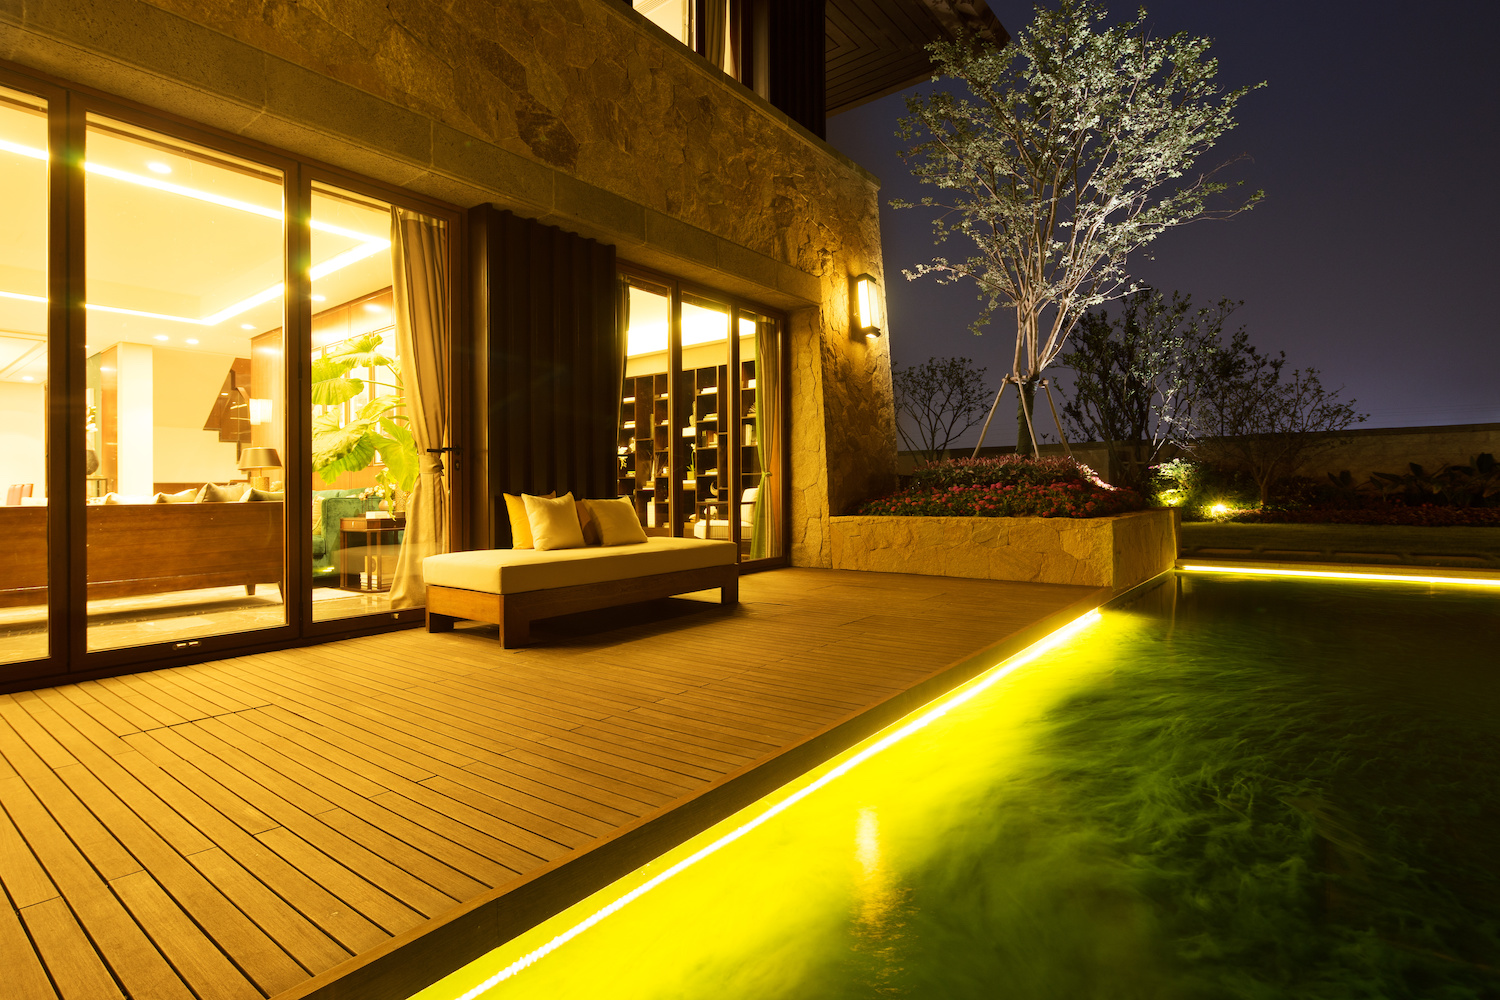 5 unique residential landscape lighting design ideas - Outdoor Lighting Design Ideas